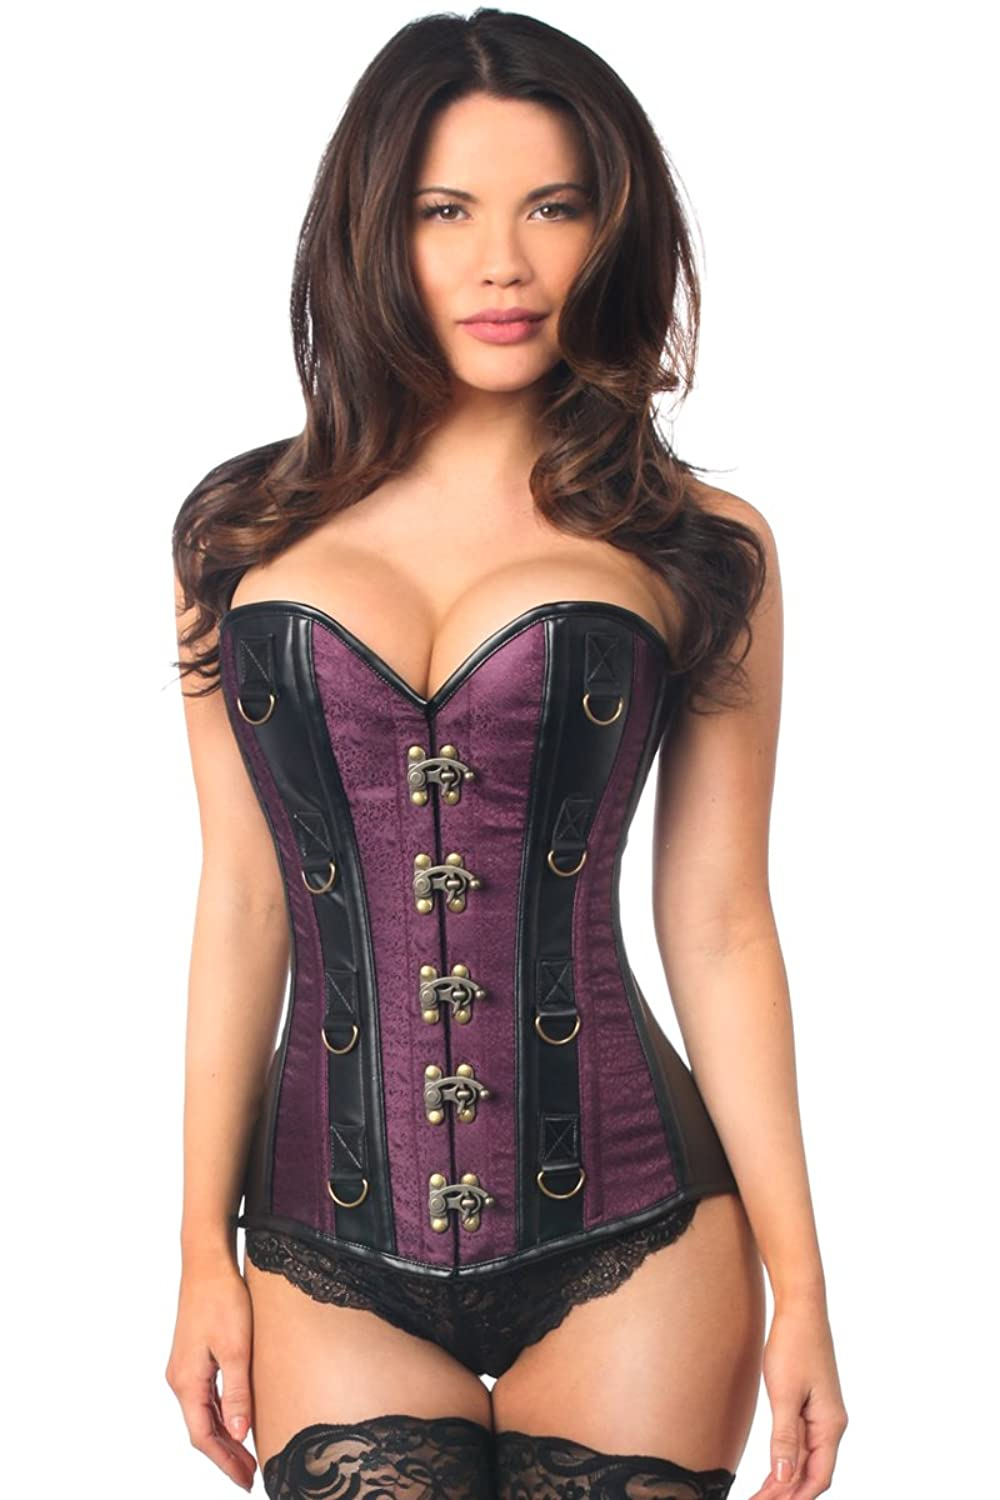 Daisy corsets Women's Top Drawer Brocade and Faux Leather Steel Boned Corset